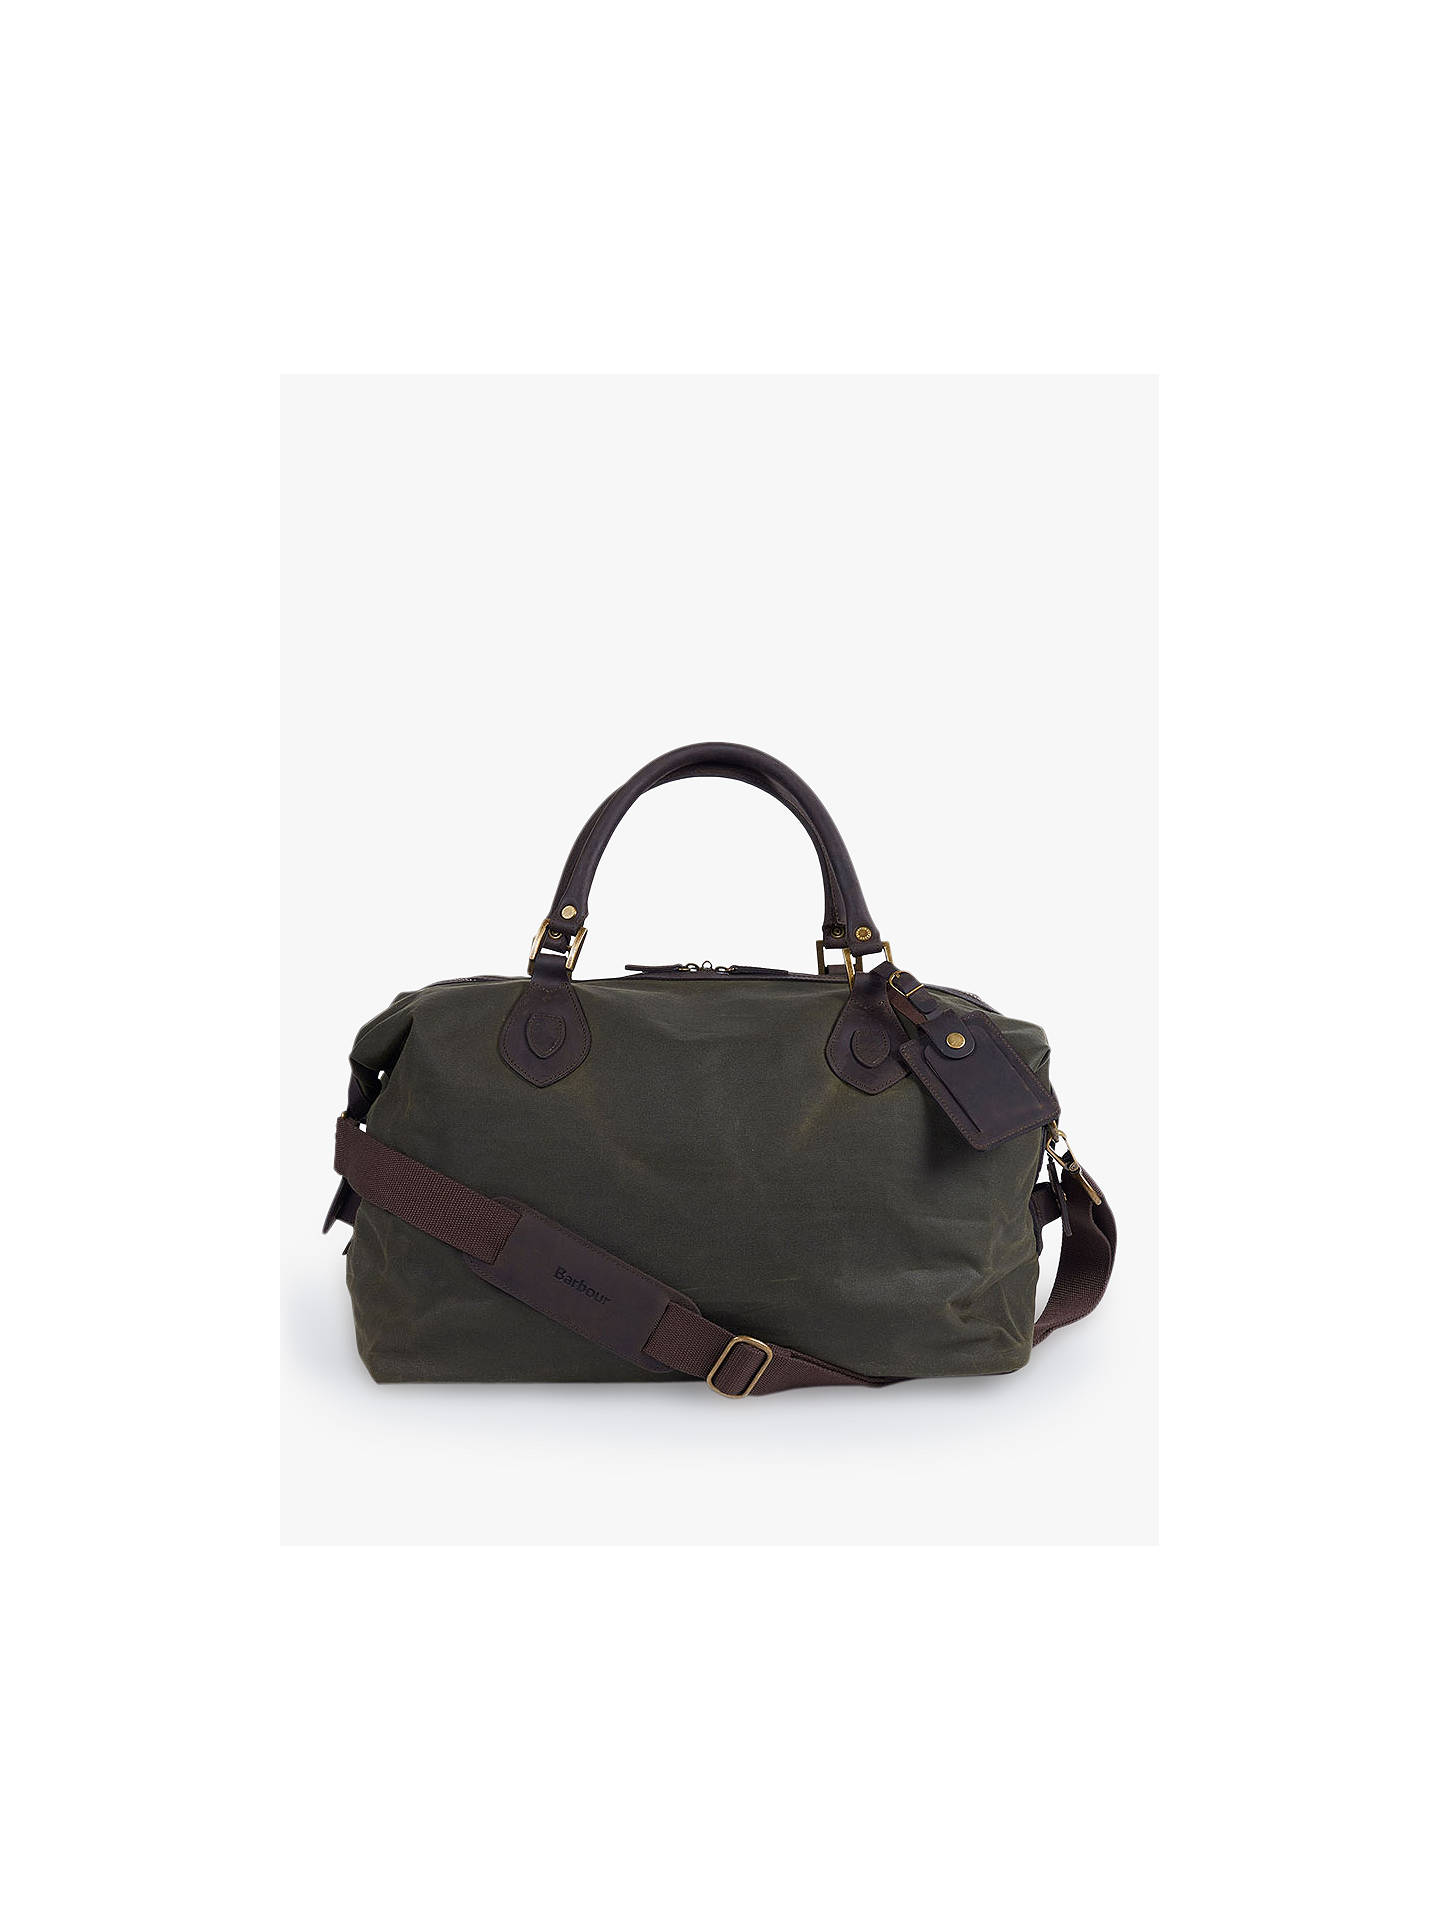 b4bee82a2 Barbour Wax Cotton Travel Explorer Holdall, Archive Olive